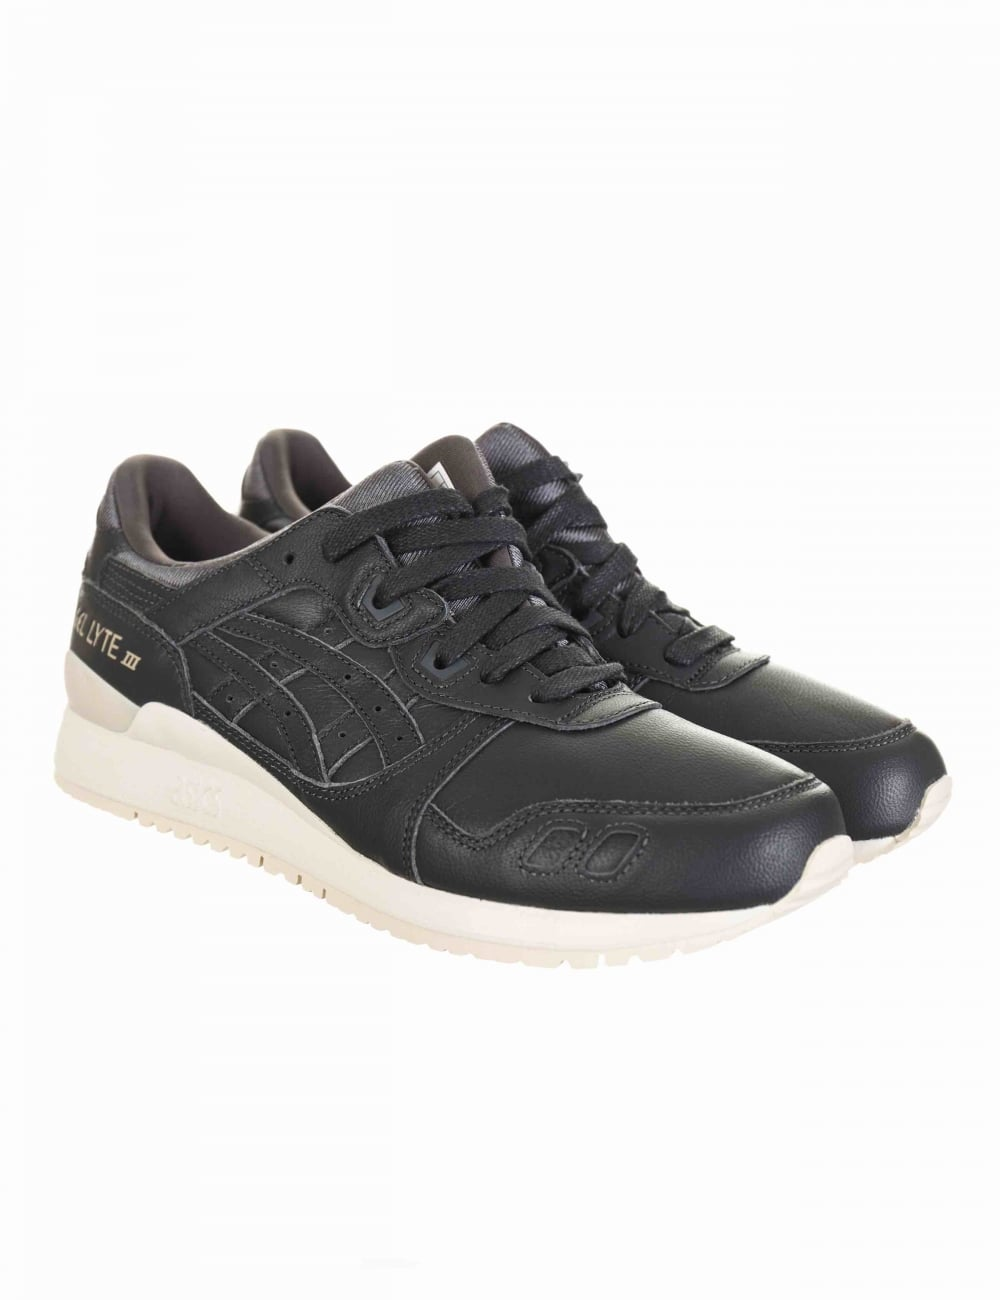 reputable site 10052 054a2 Gel Lyte III Trainers - Dark Grey/Dark Grey